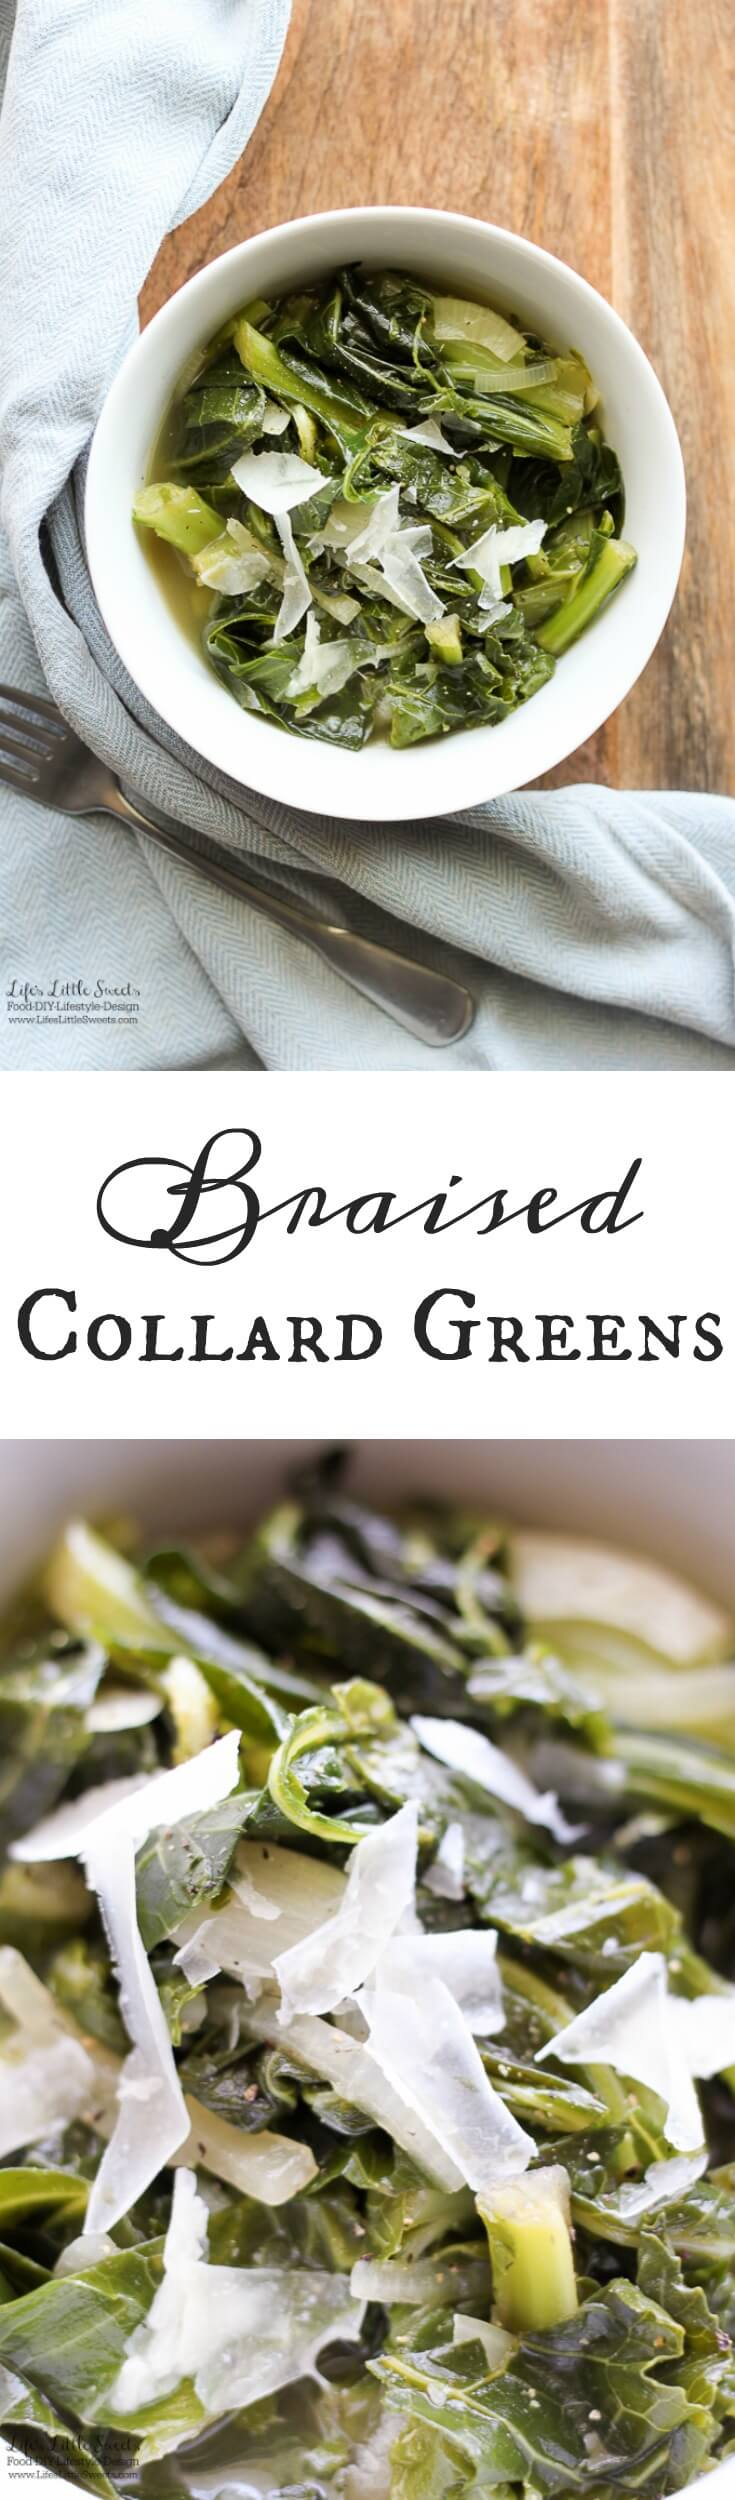 This Braised Collard Greens recipe is the perfect, savory side dish for any dinner. (GF & vegan option) www.lifeslittlesweets.com